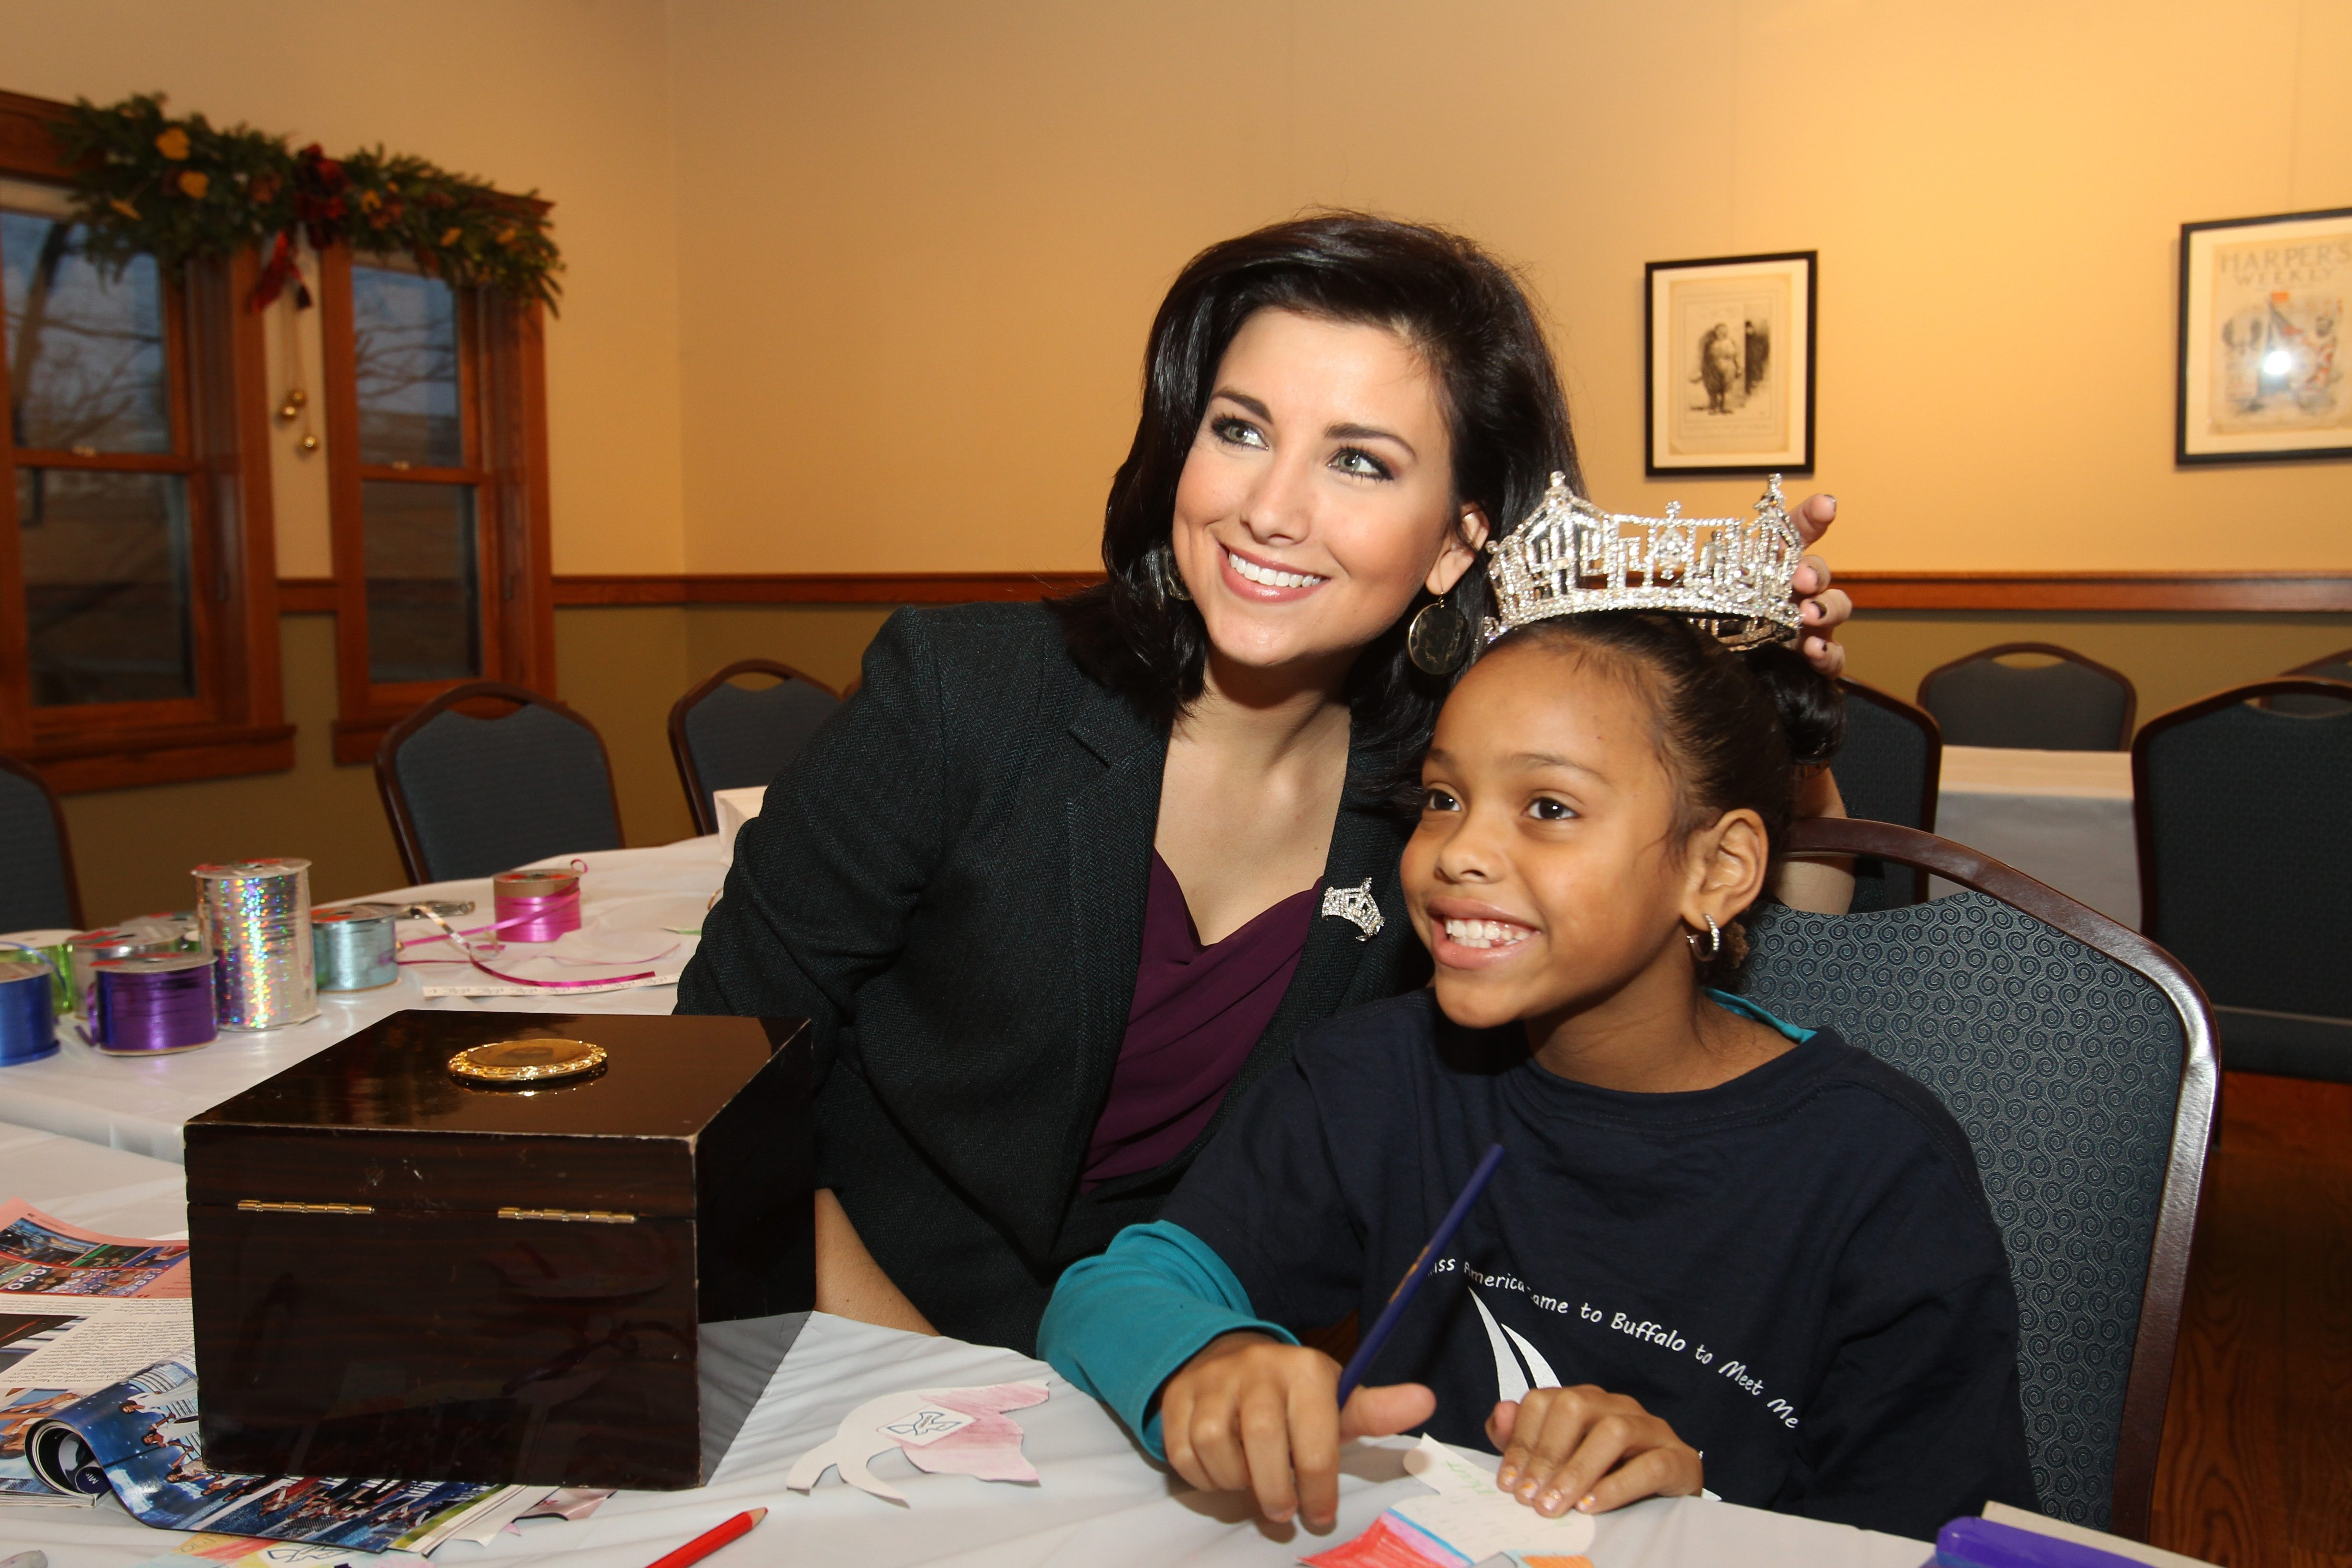 Miss America 2012 Laura Kaeppeler lets Na'ima Flores wear the coveted crown while the 7-year-old creates Christmas ornaments Wednesday at the Theodore Roosevelt Inaugural Historic Site.